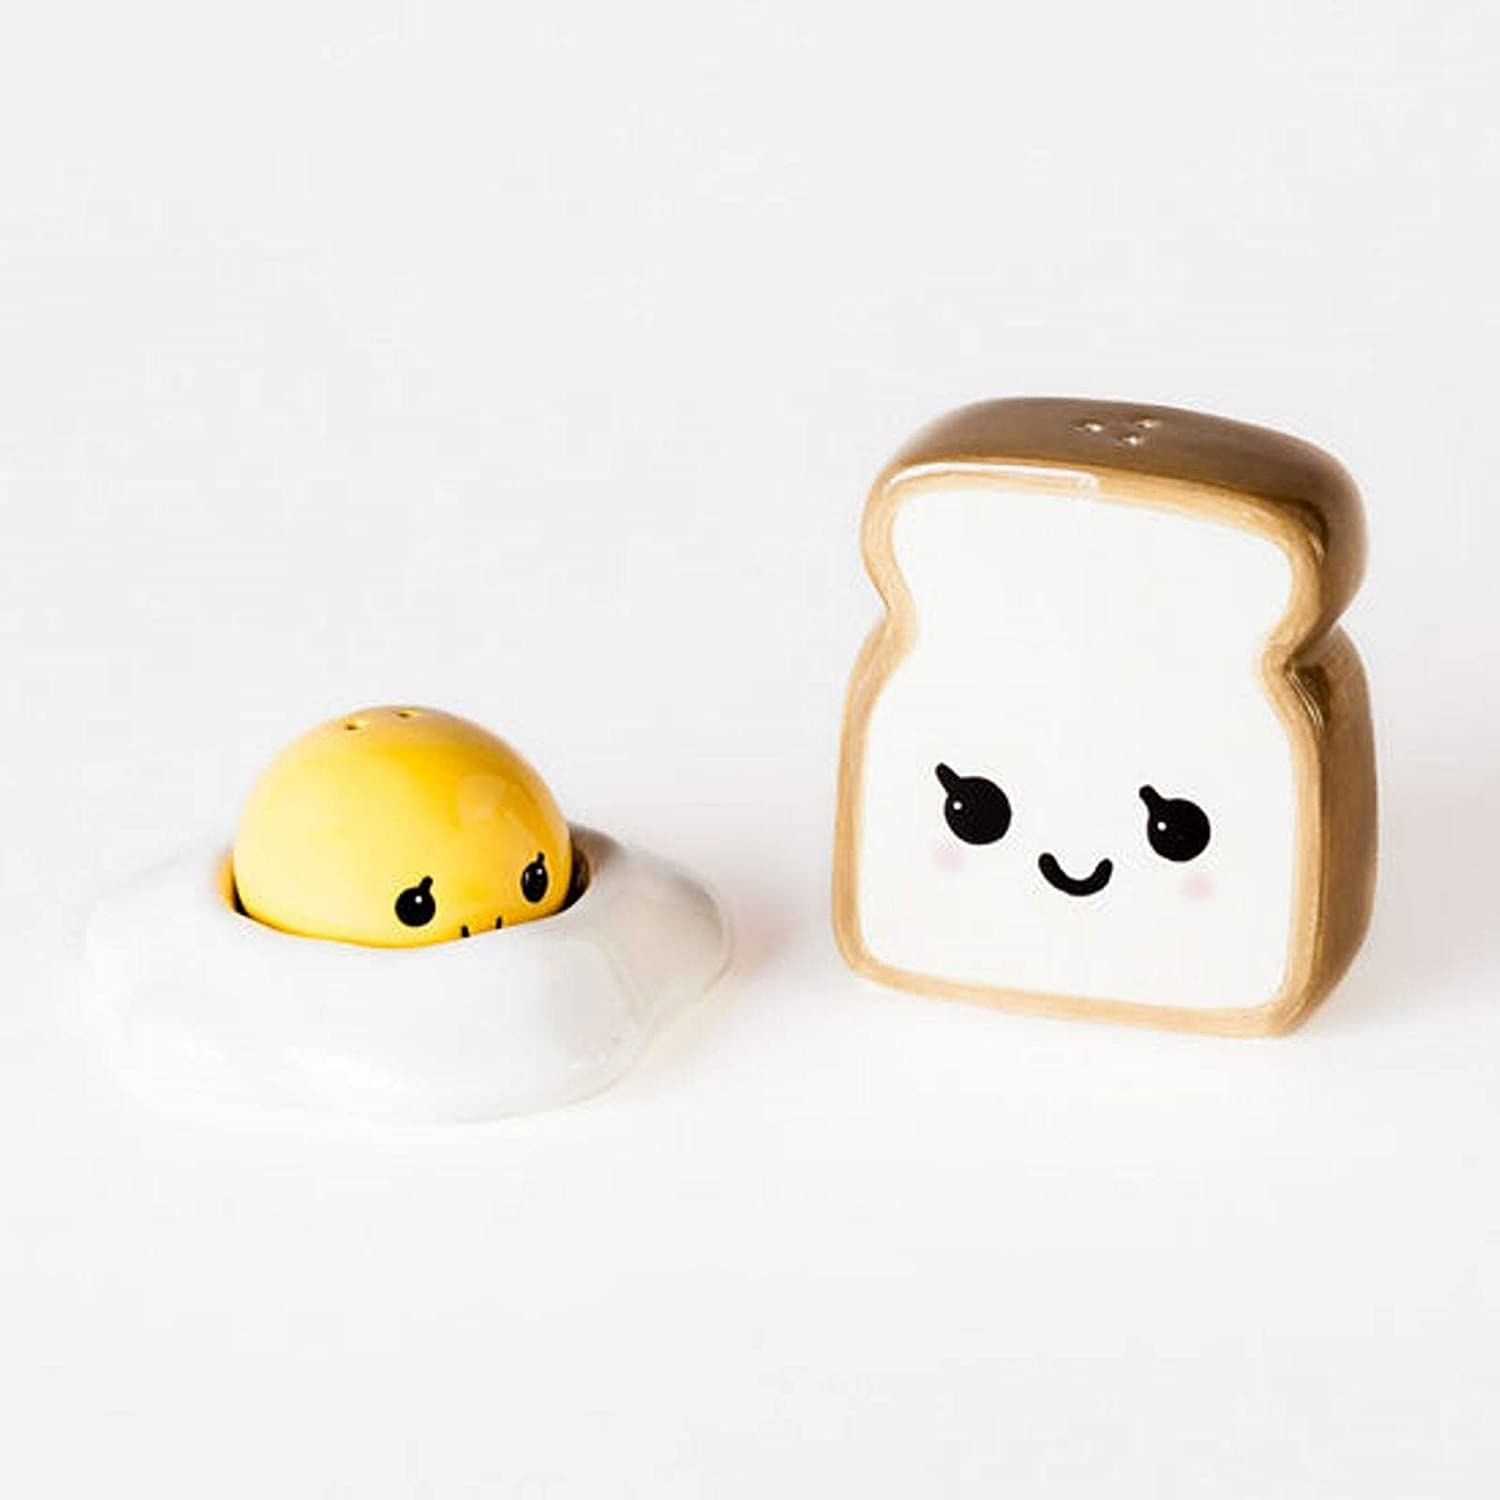 The toast and egg shakers which have eyes and a mouth. The egg is two parts: a yolk which attaches the egg white via a magnet